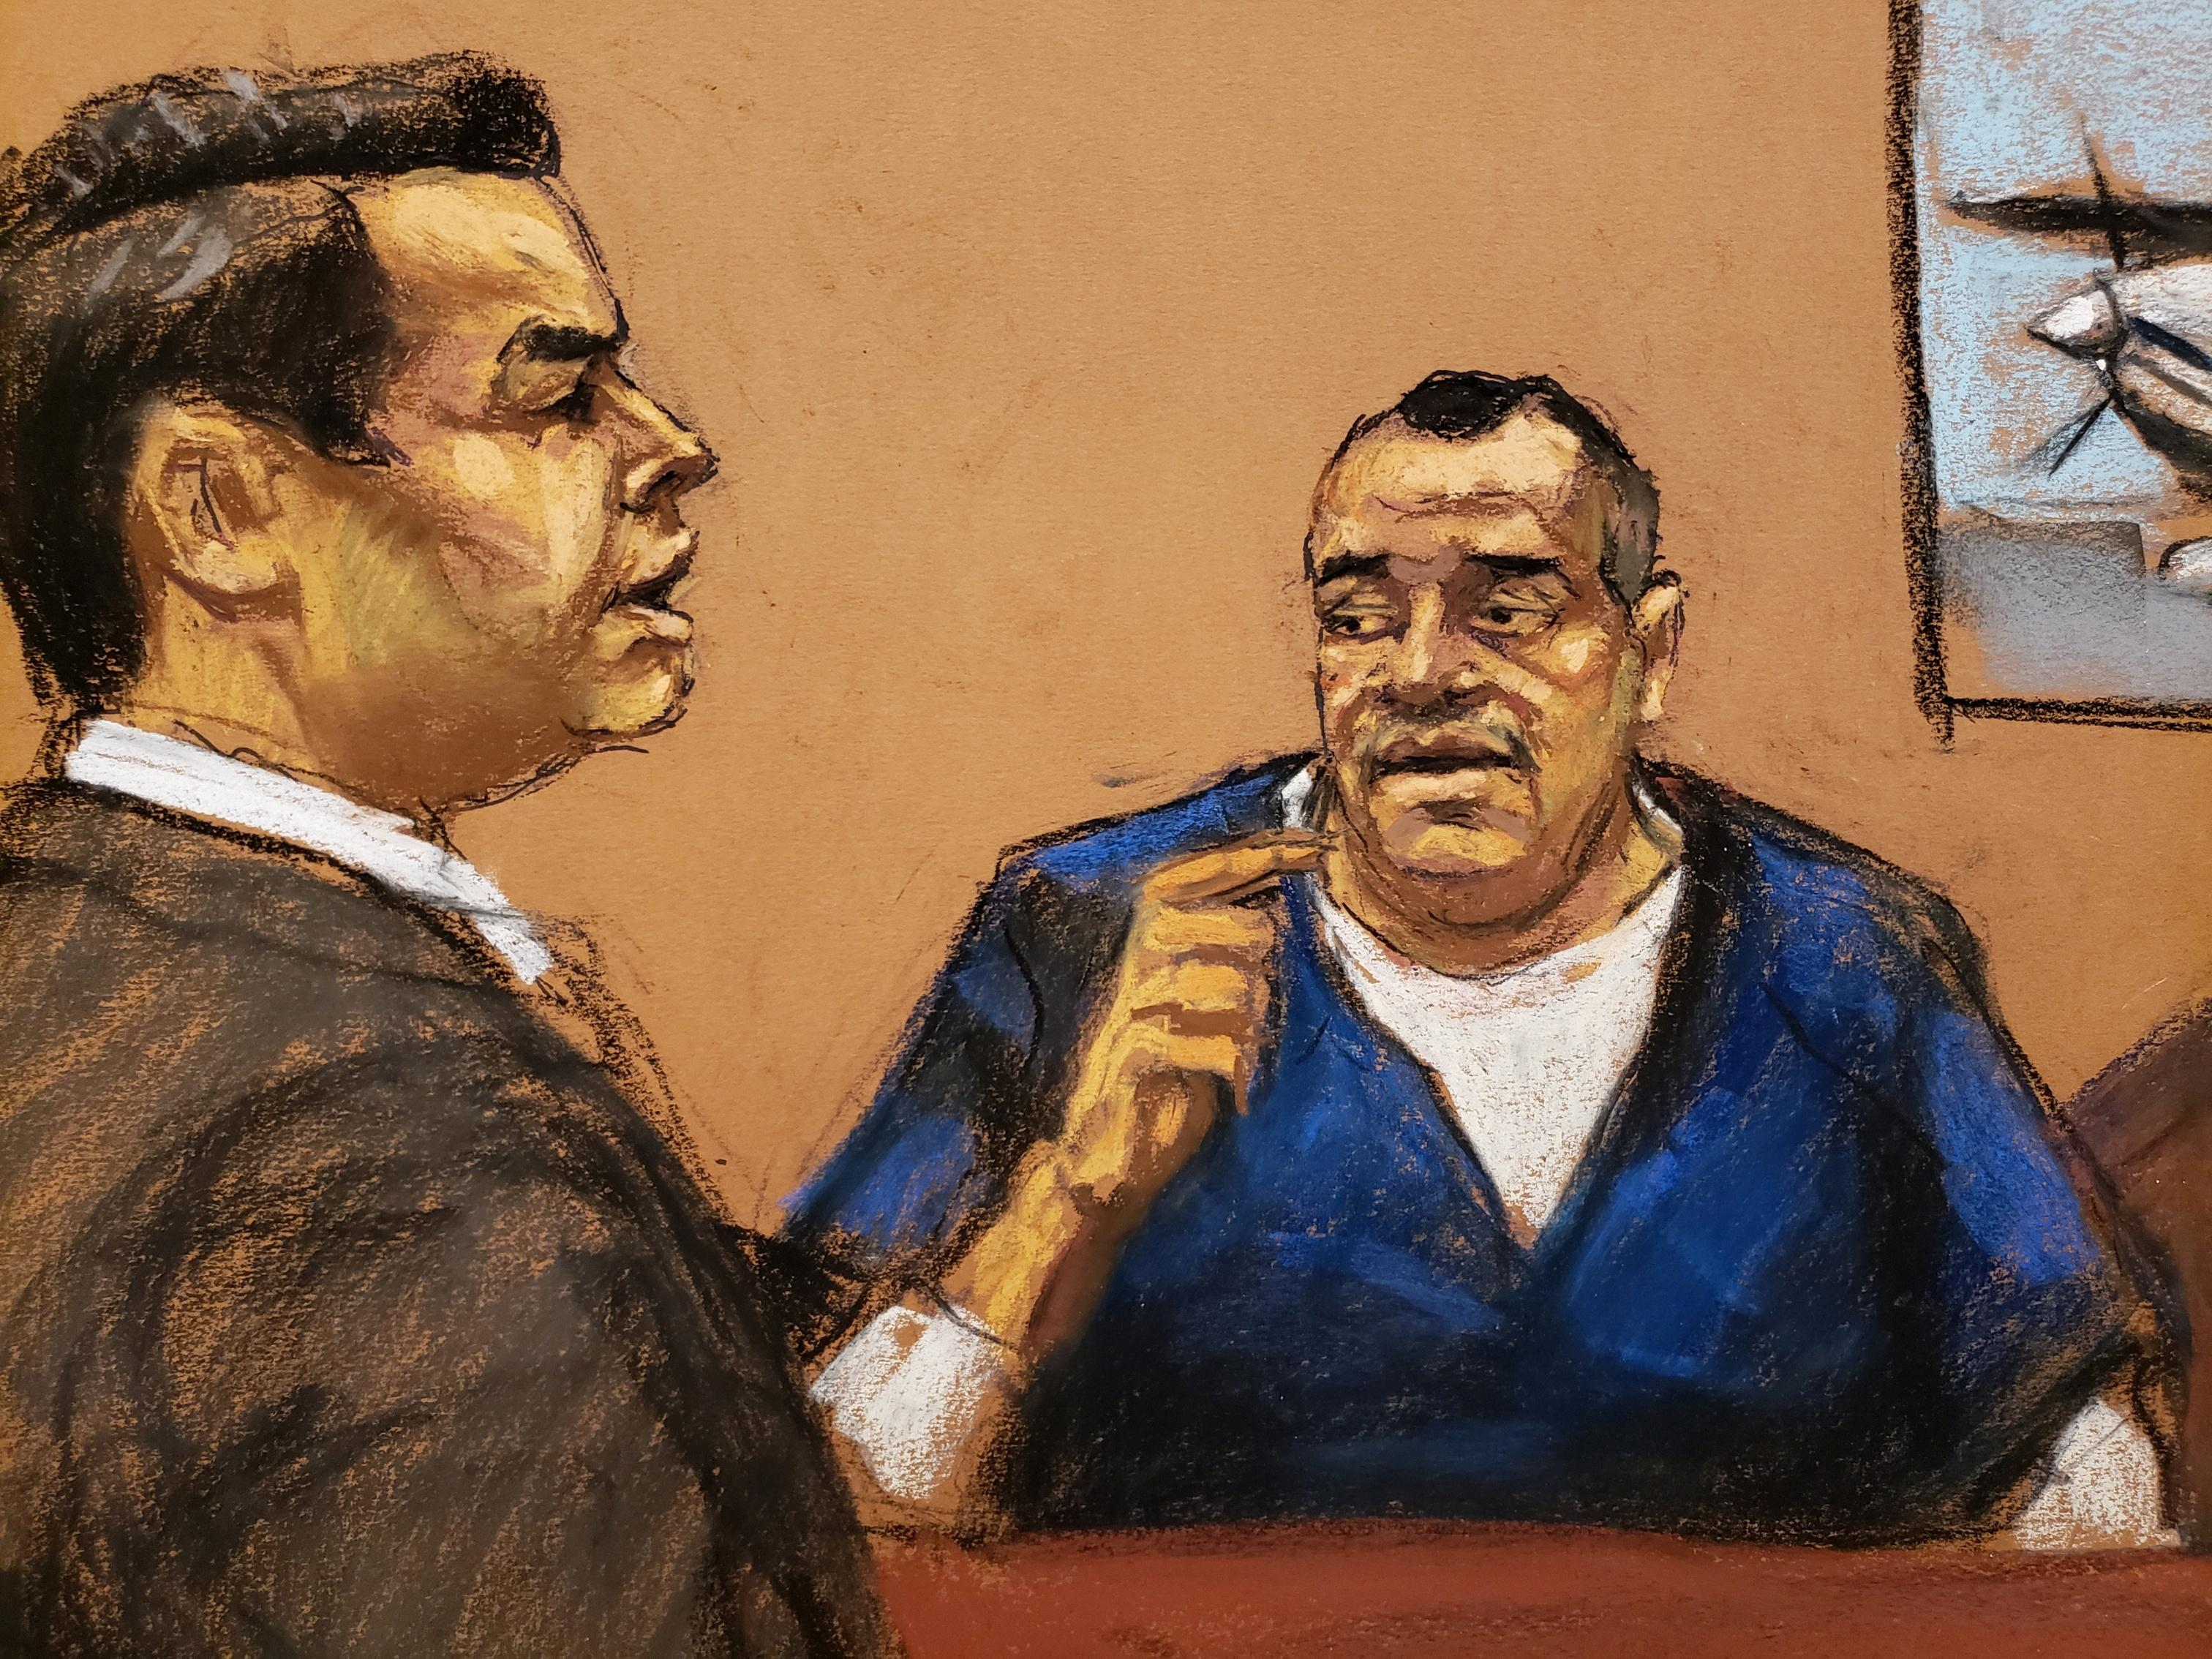 U.S. trial witness says he watched 'El Chapo' murder three people